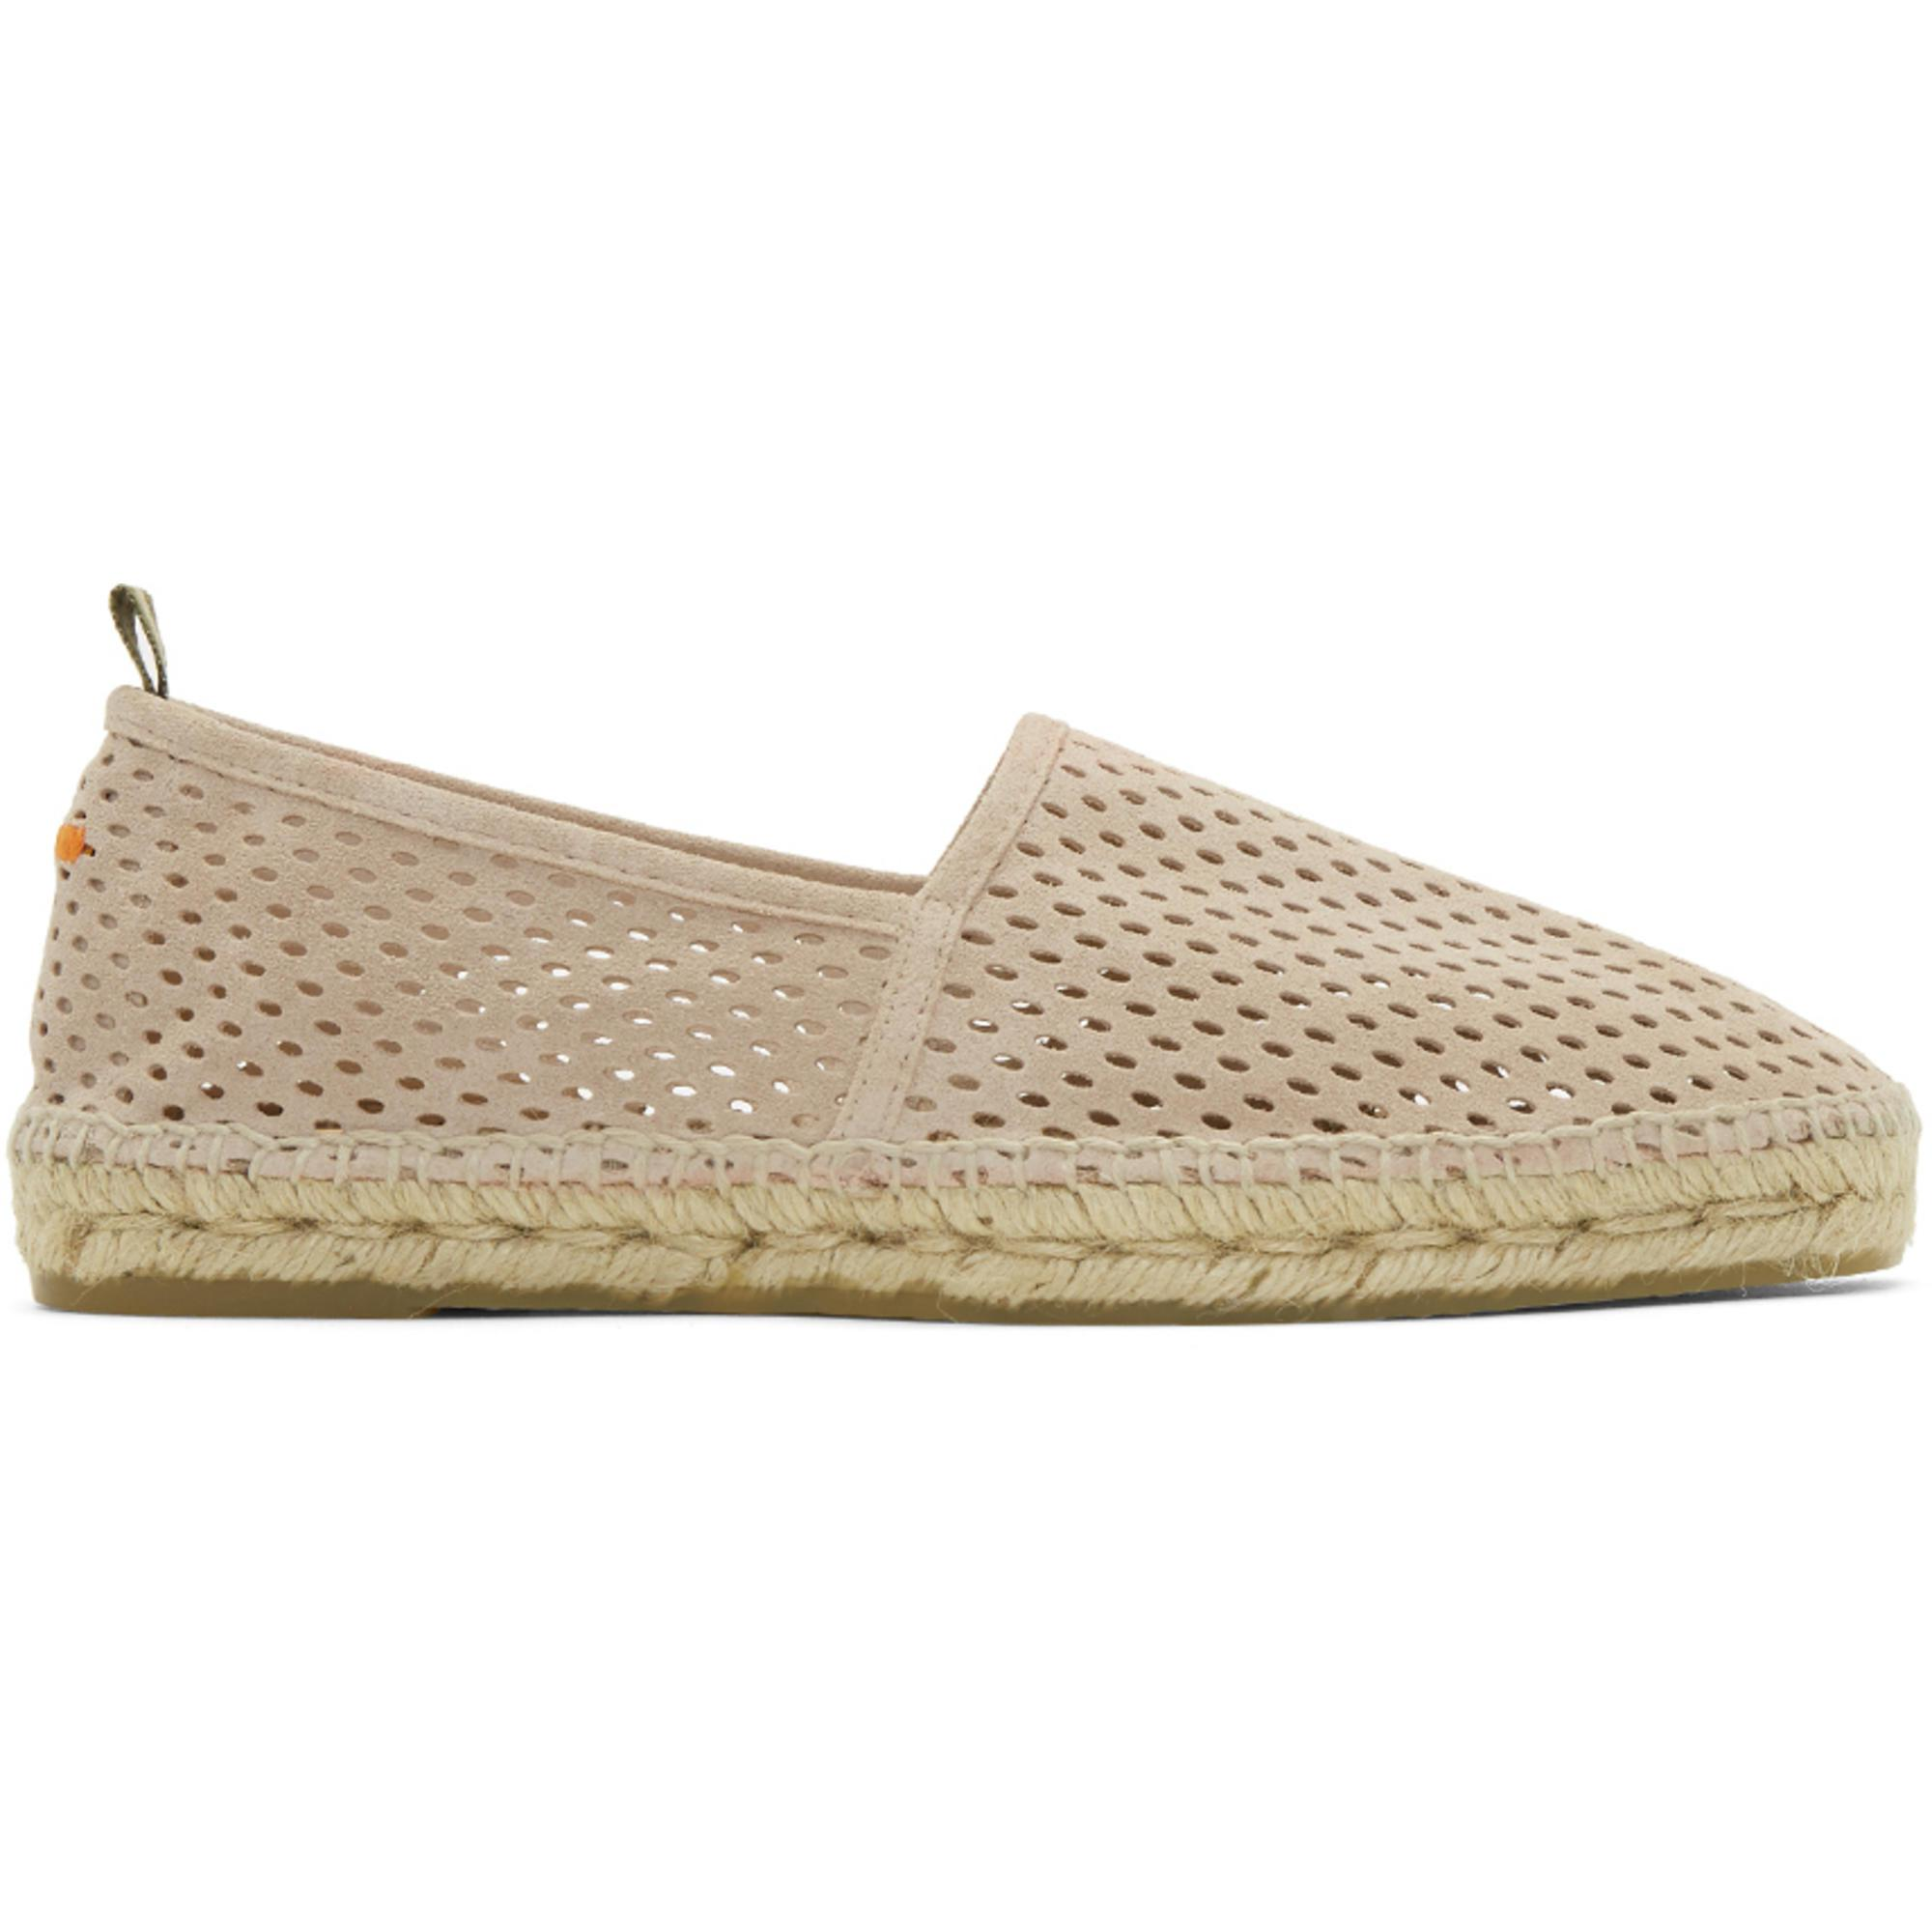 Castaner Perforated Pablo Espadrilles